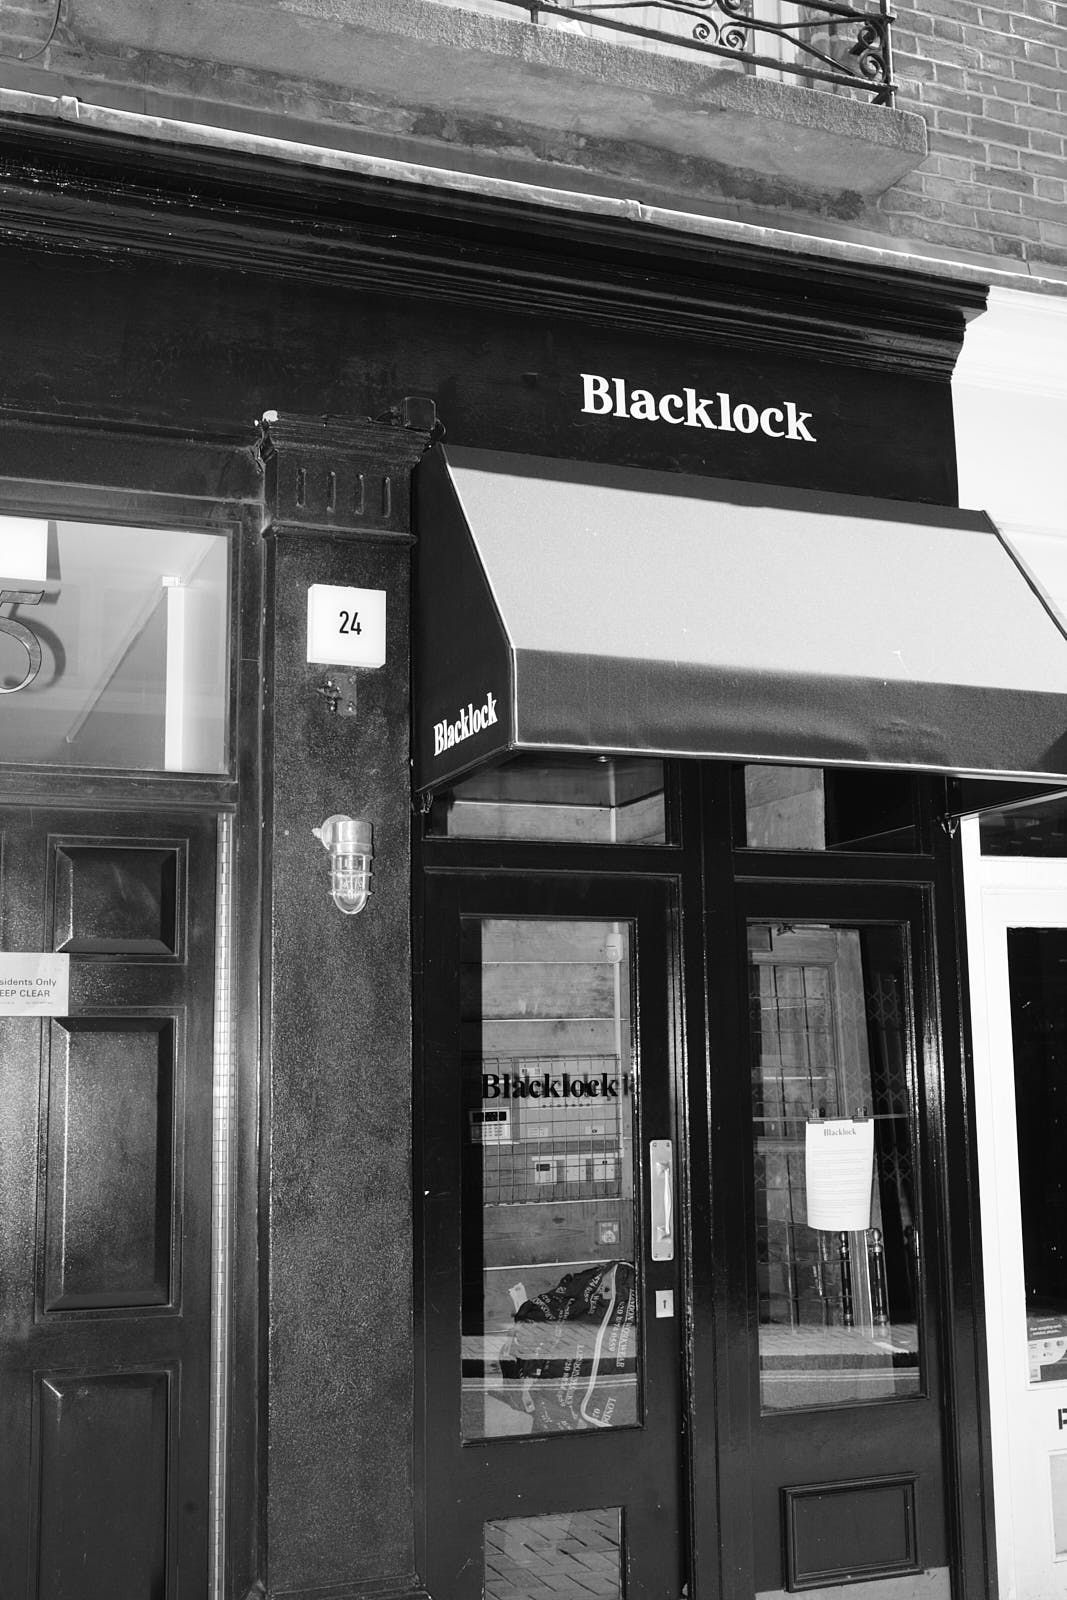 Blacklock steakhouse in Soho with a closure notice in its front door